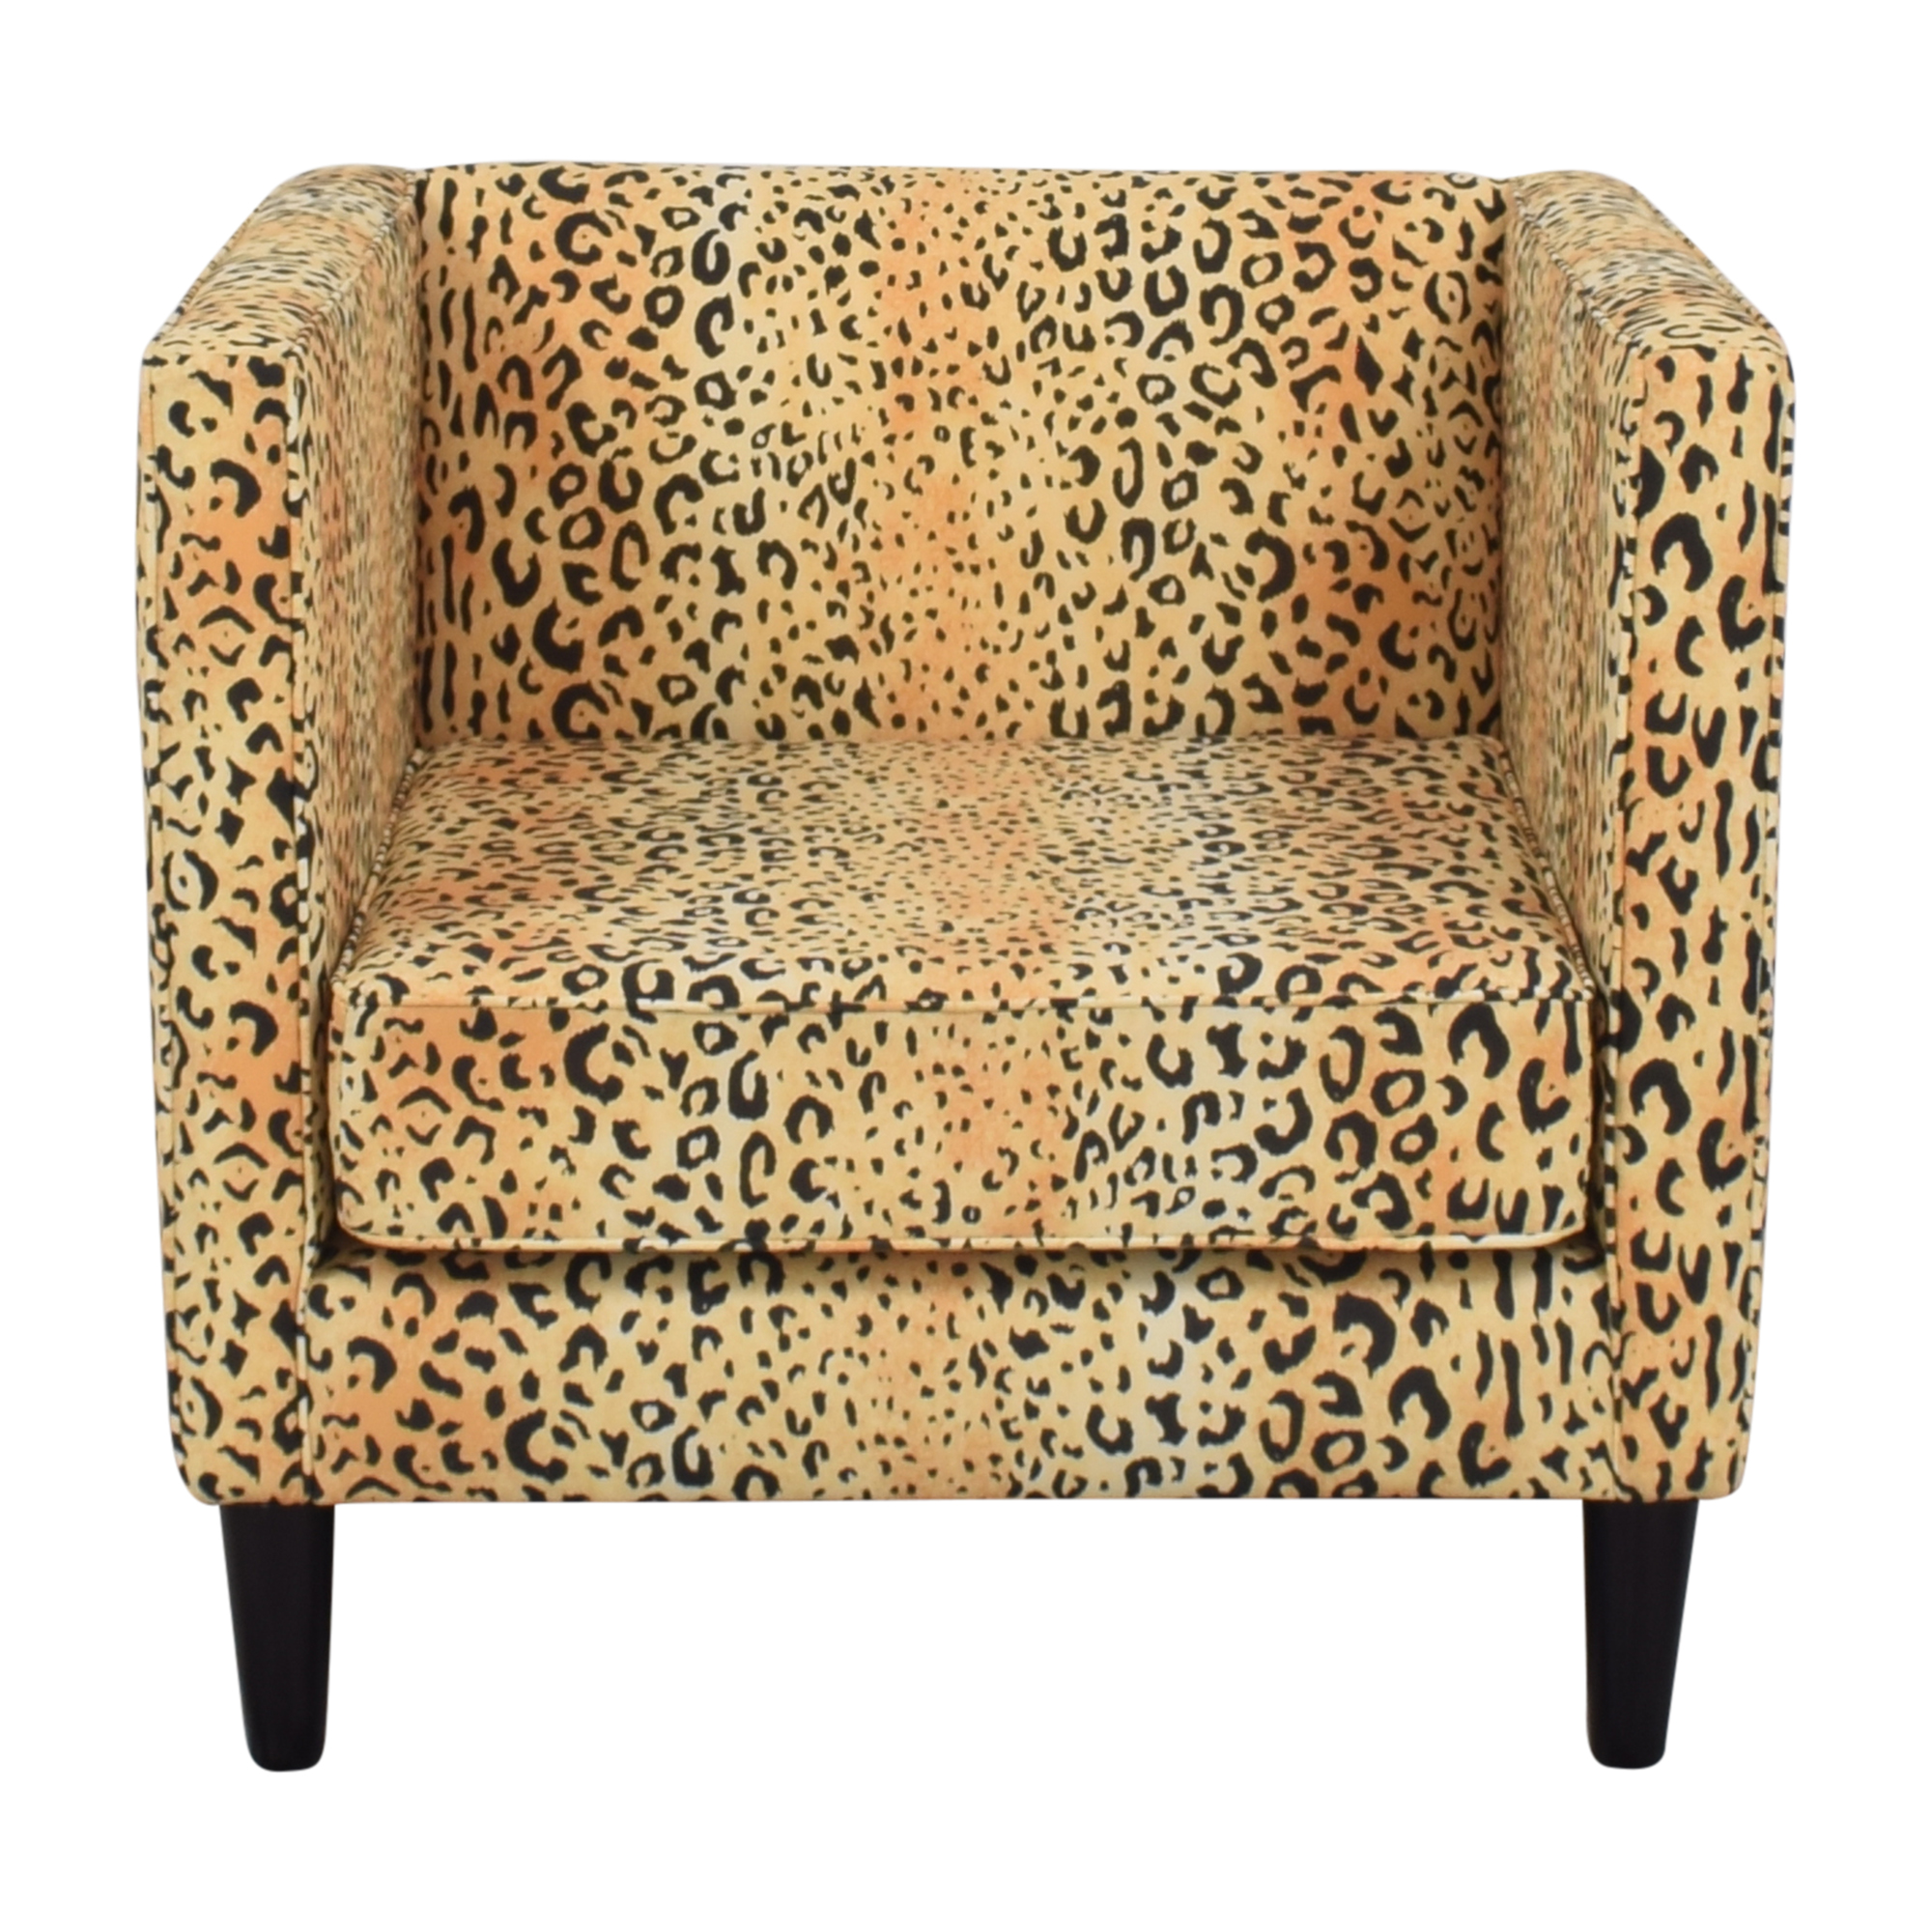 The Inside The Inside Tuxedo Chair in Leopard Print coupon